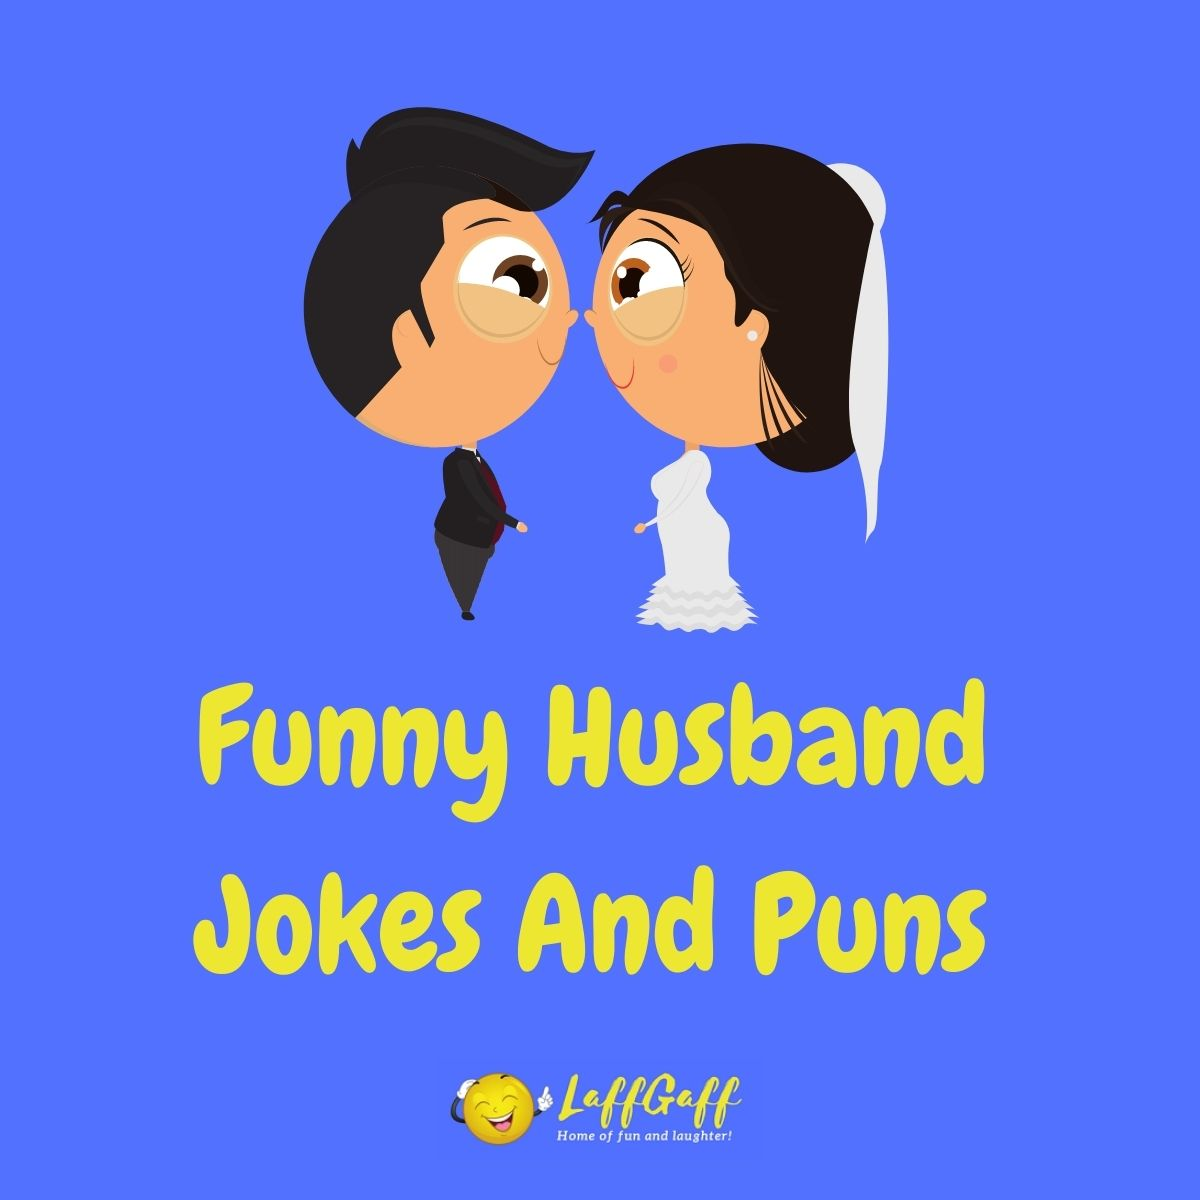 Featured image for a page of funny husband jokes and puns.